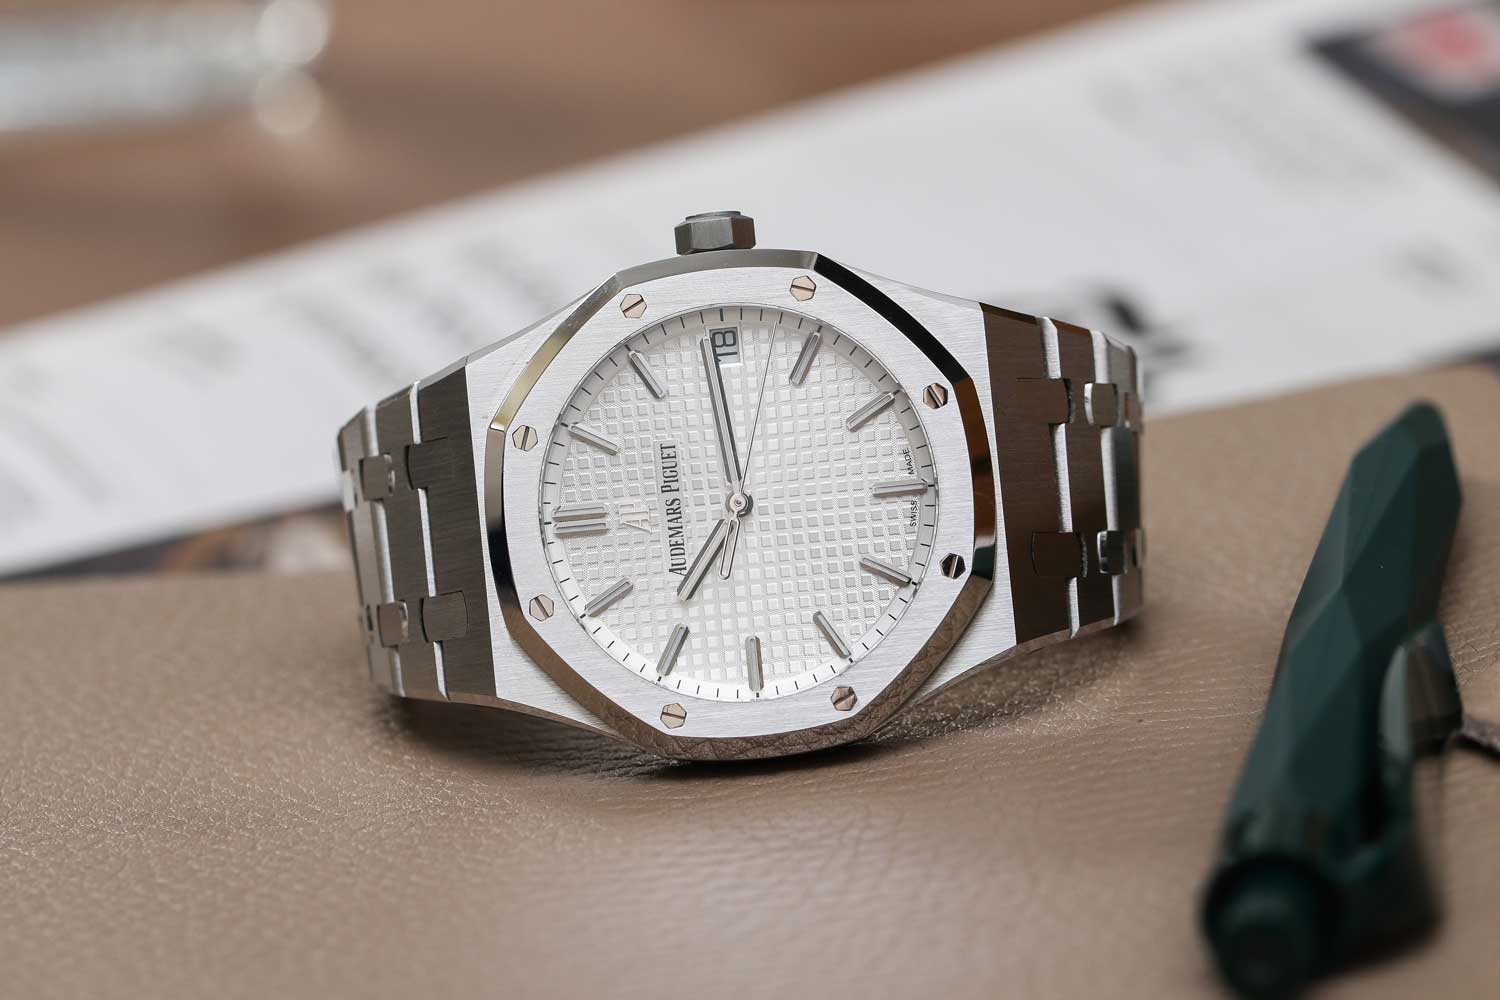 The Royal Oak ref. 15500ST in steel with white dial. (©Revolution)